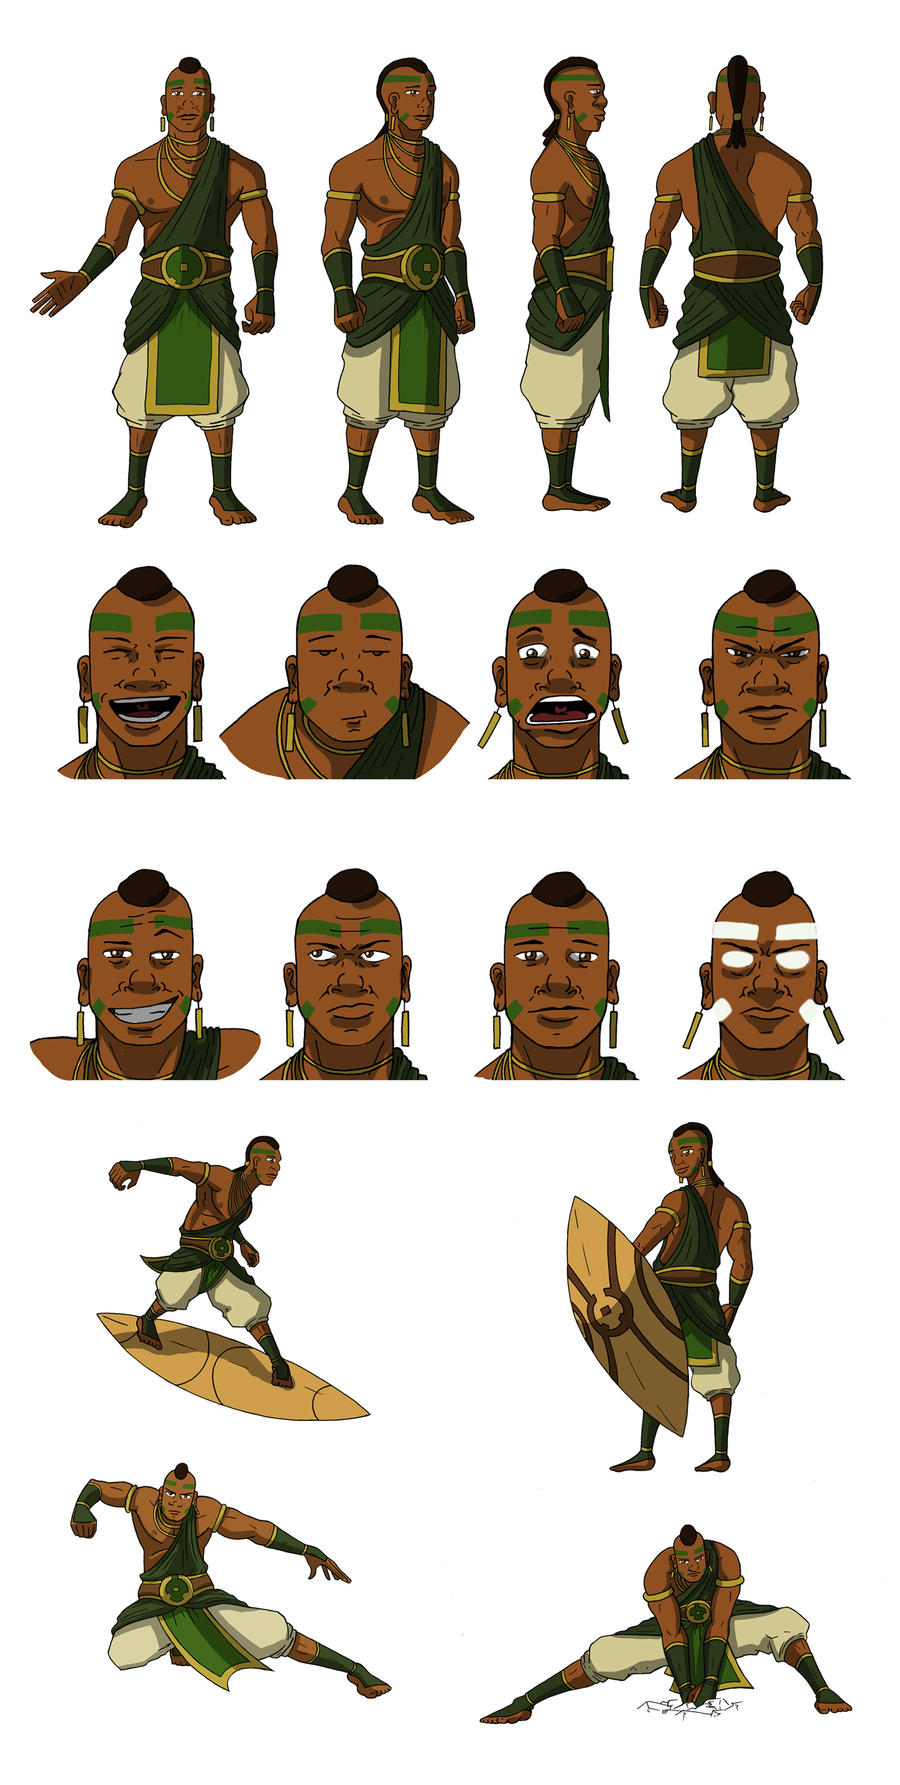 Character Design Avatar The Last Airbender : Atla original character design avatar jabali by